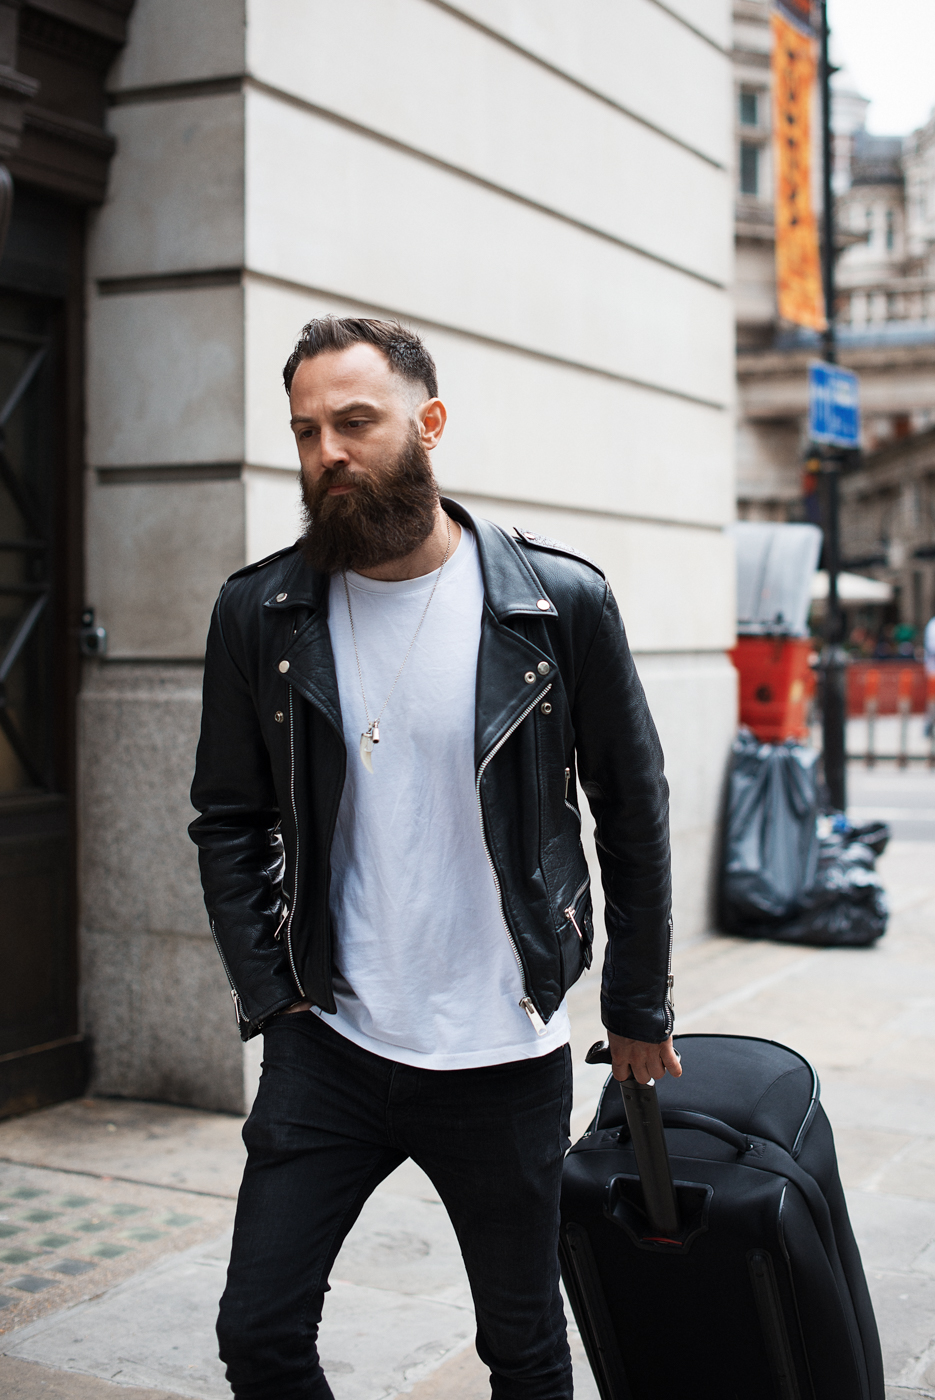 Crew. Similar look: Reclaimed Vintage Leather Biker Jacket.